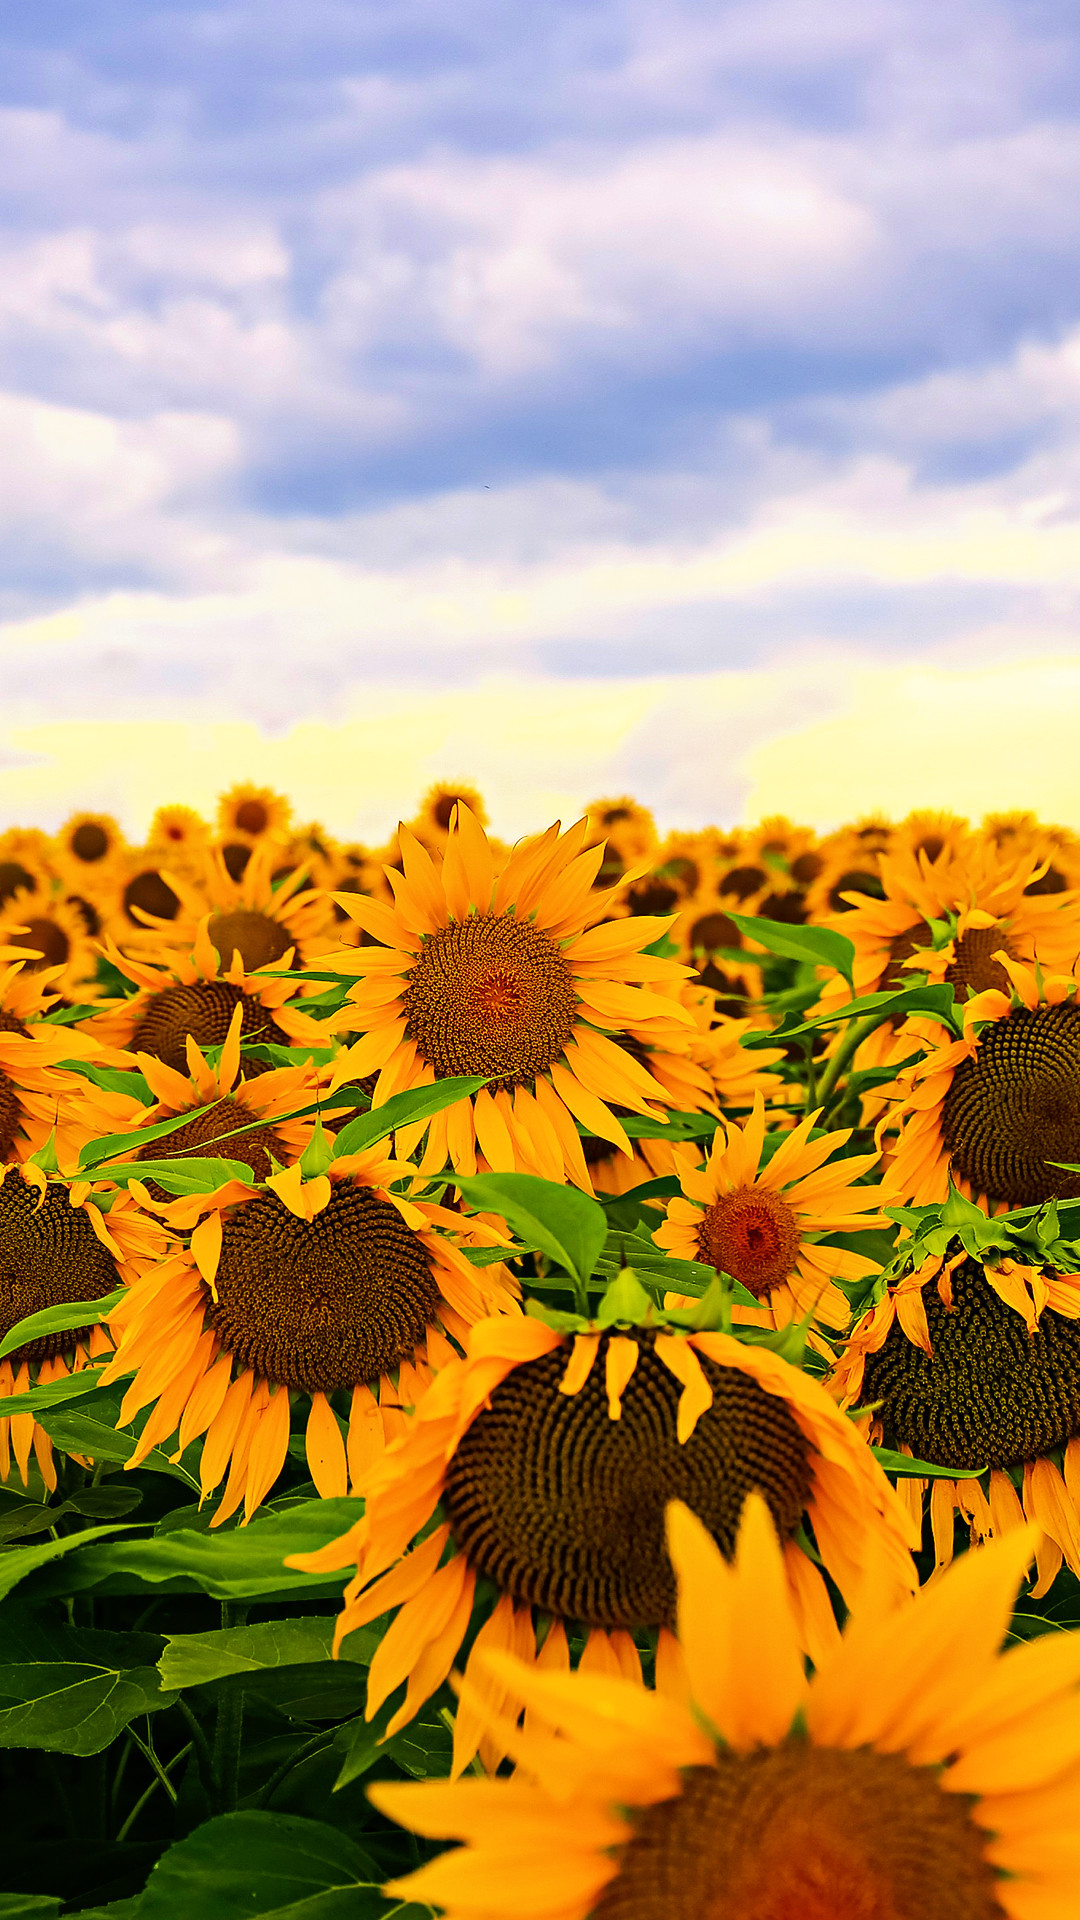 Nature Images 2mb: Sunflowers Wallpaper (61+ Images